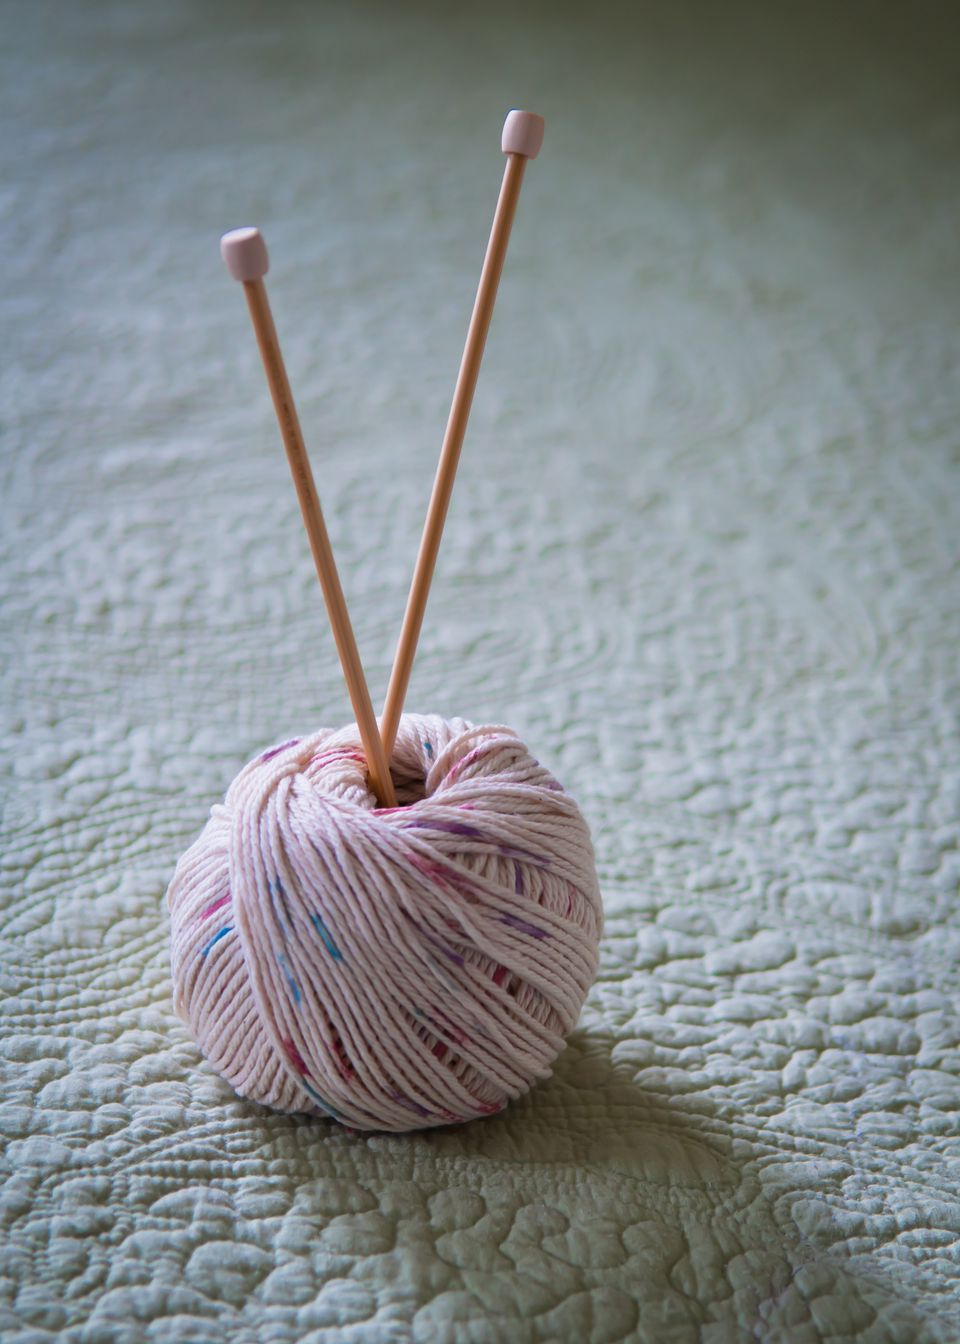 Purl of cotton ball and knitting needles